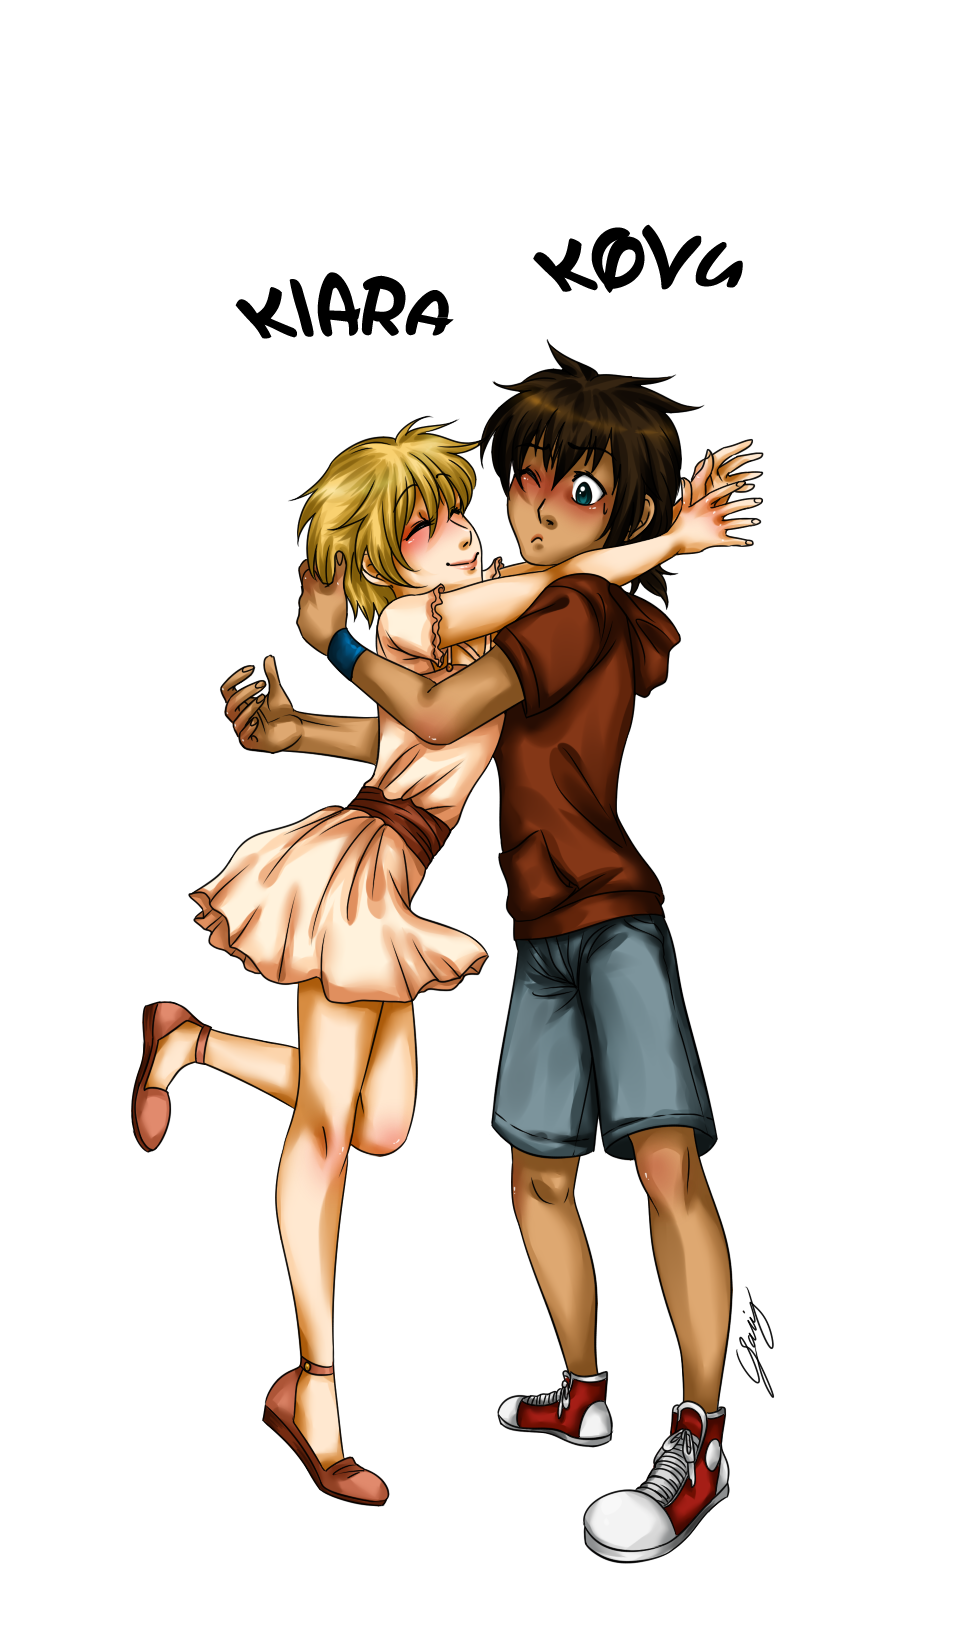 Human Kiara and Kovu by x-Lilou-chan-x on DeviantArt